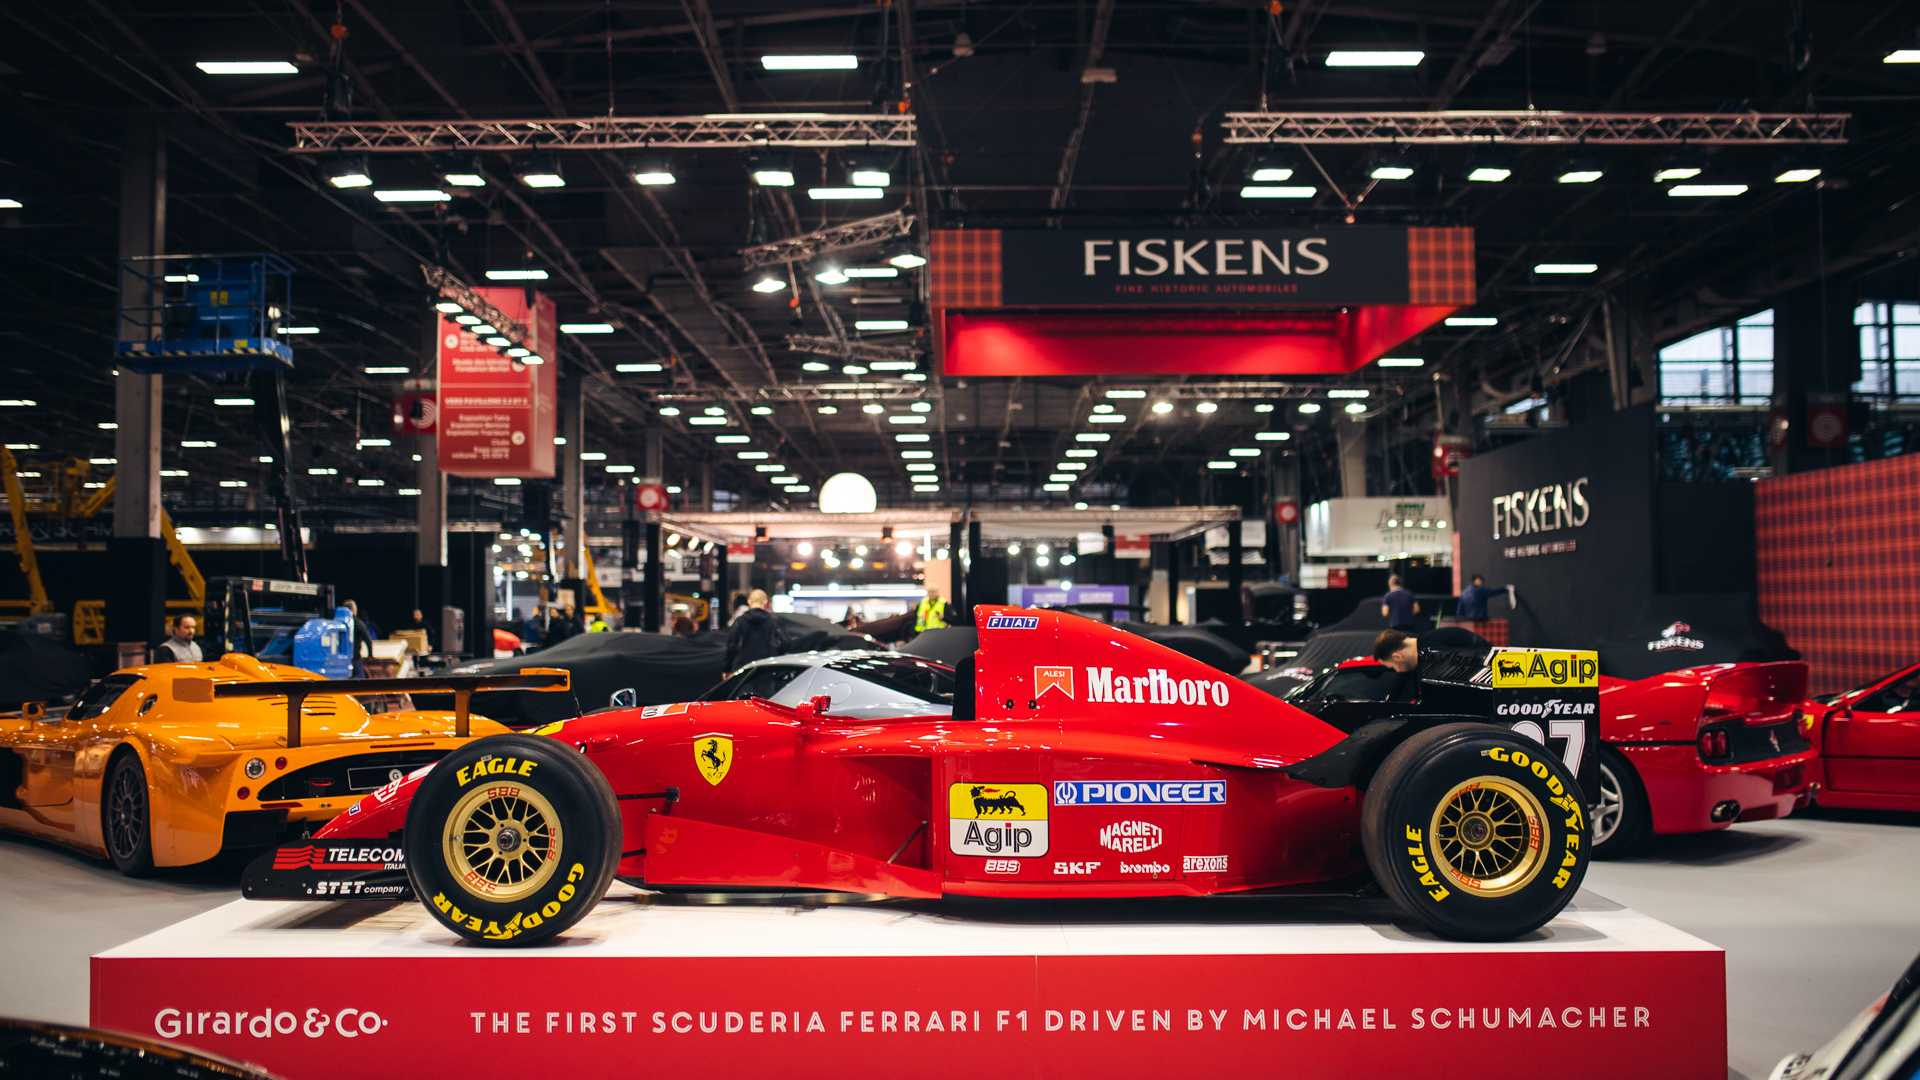 Michael Schumacher Driven Ferrari F1 Racecar For Sale Motorious